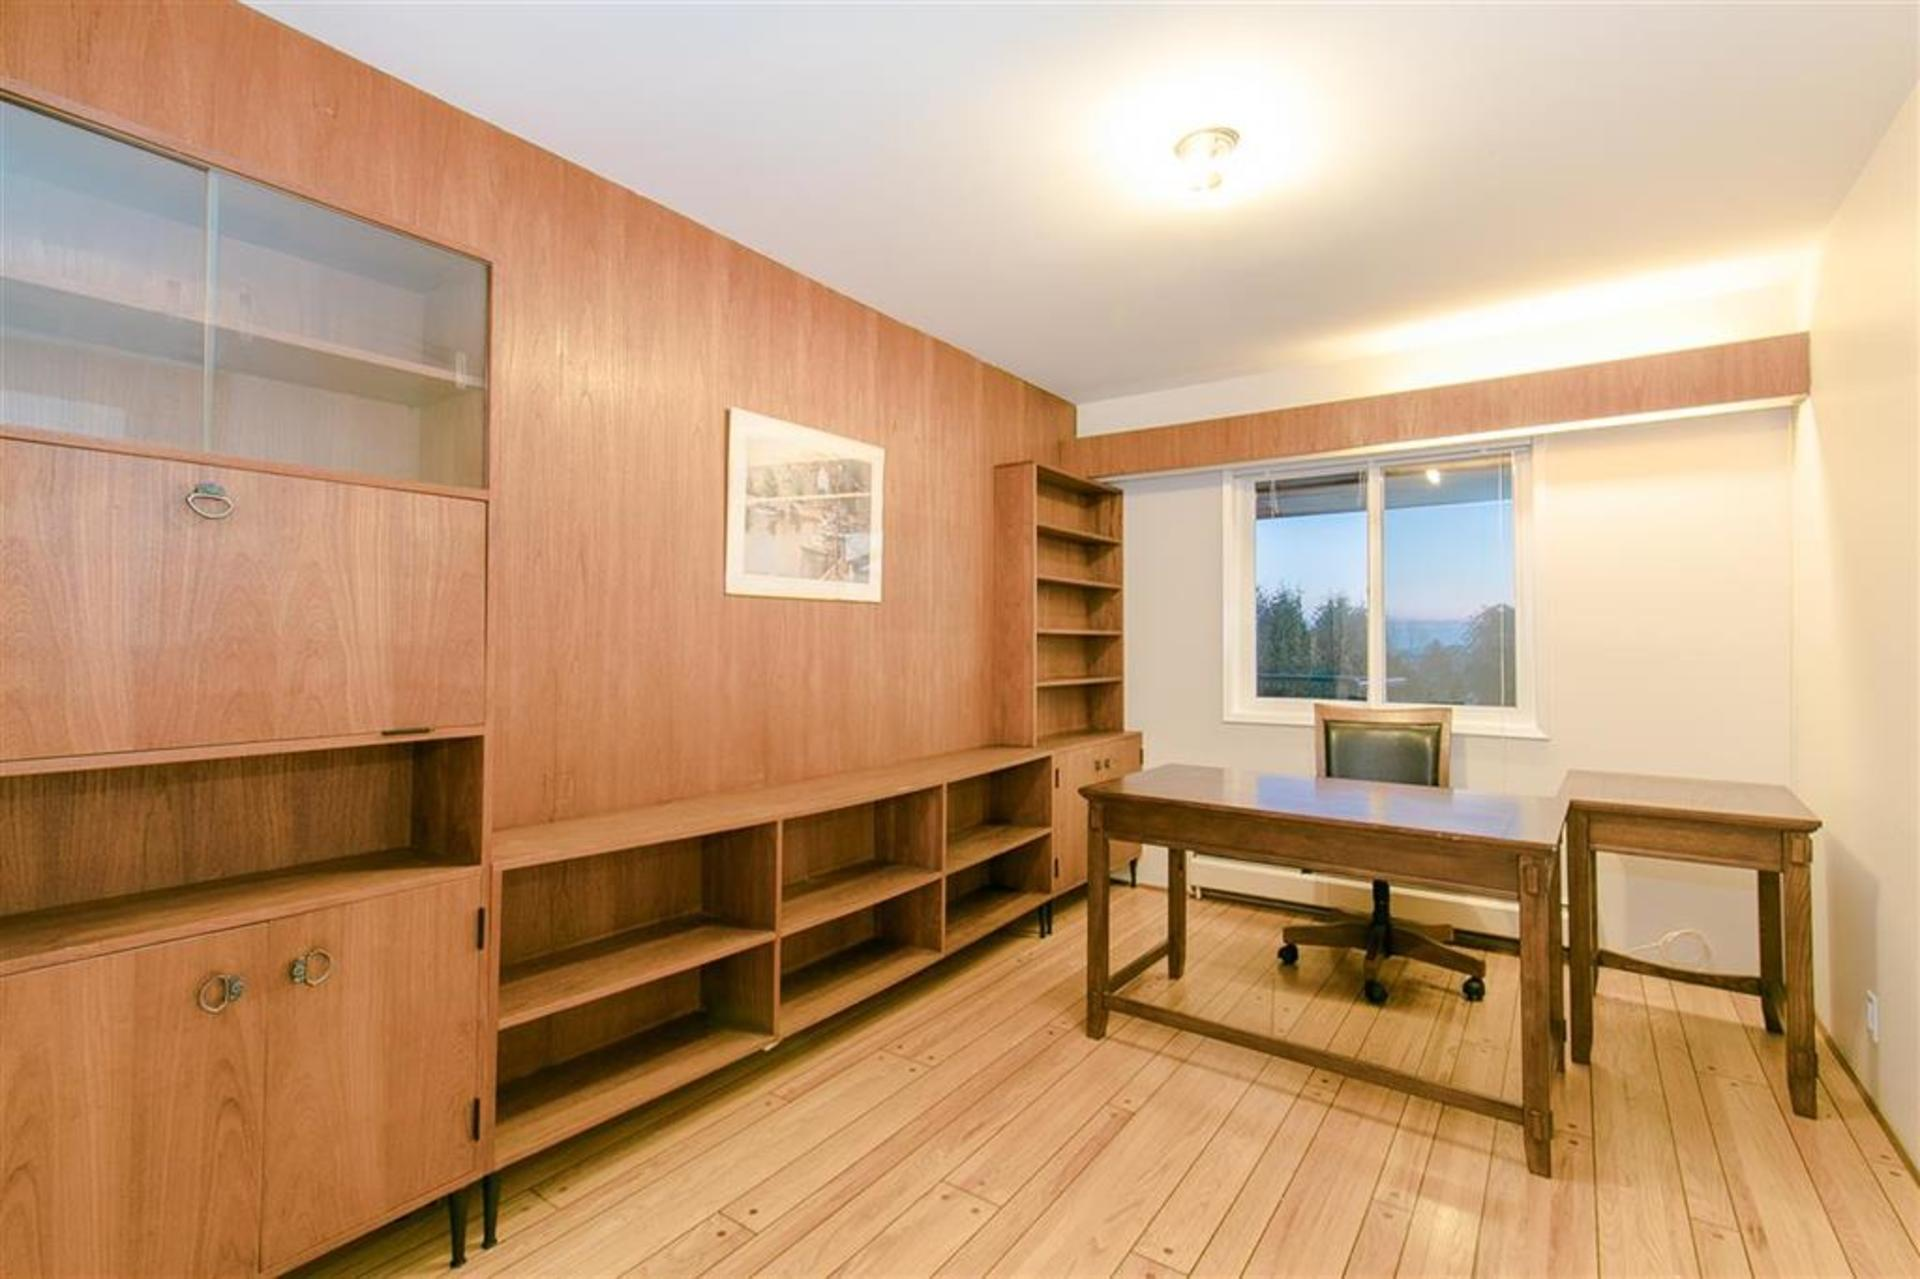 262178191-18 at 1257 Chartwell Place, Chartwell, West Vancouver